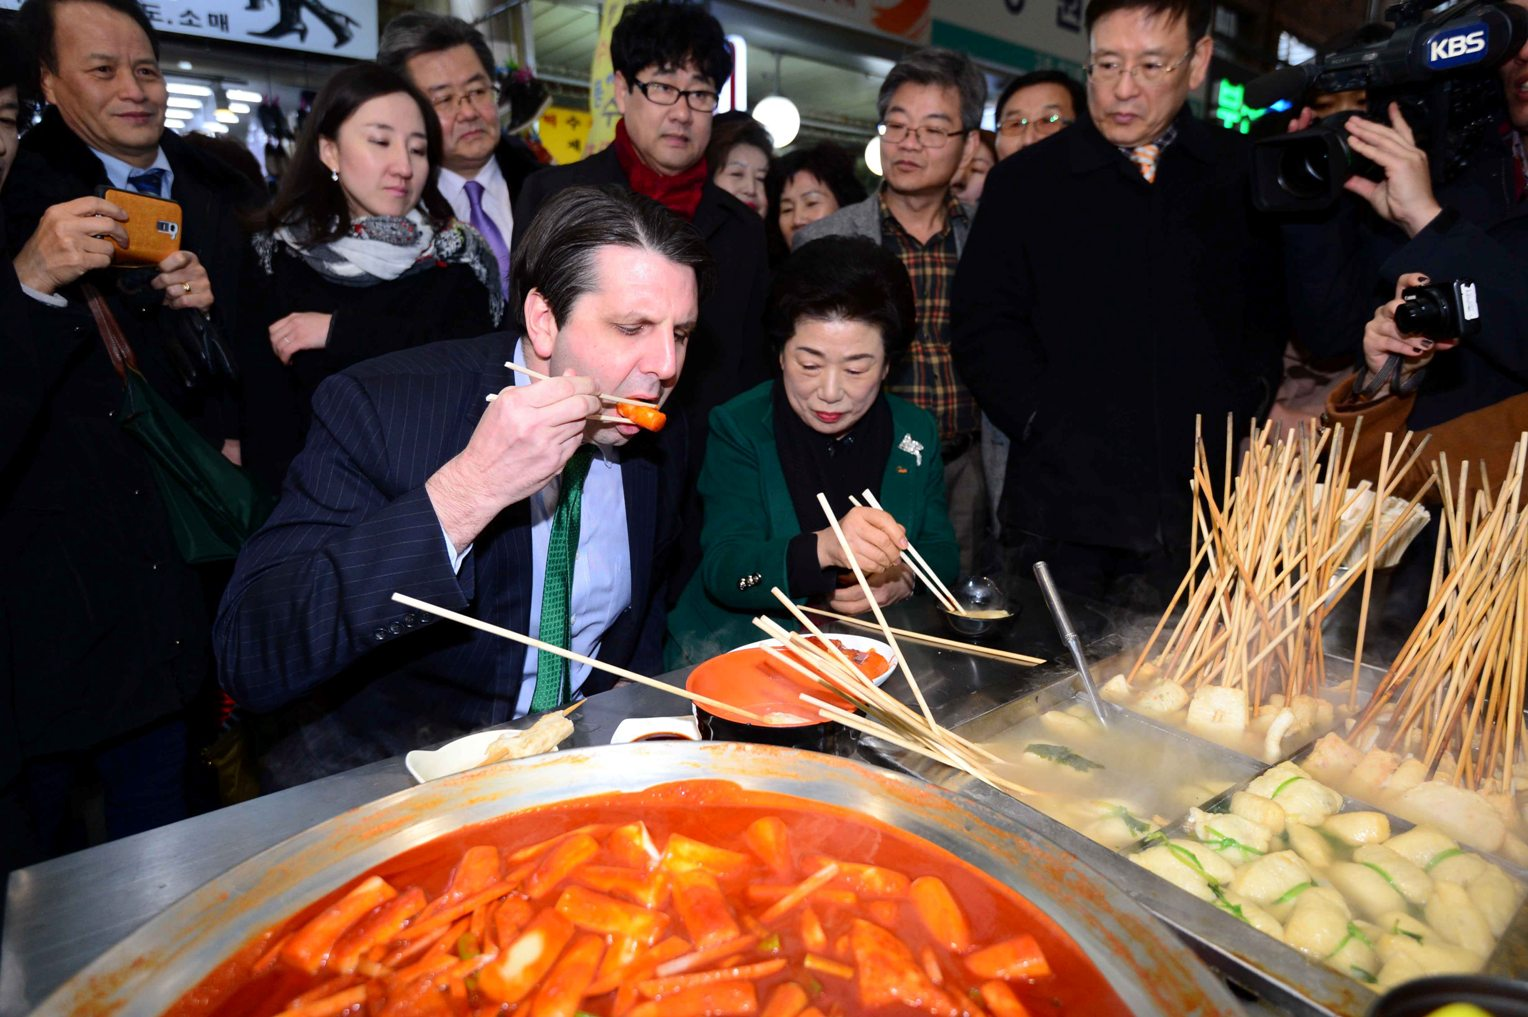 Foreigners Visiting S Korea Most Interested In Street Food